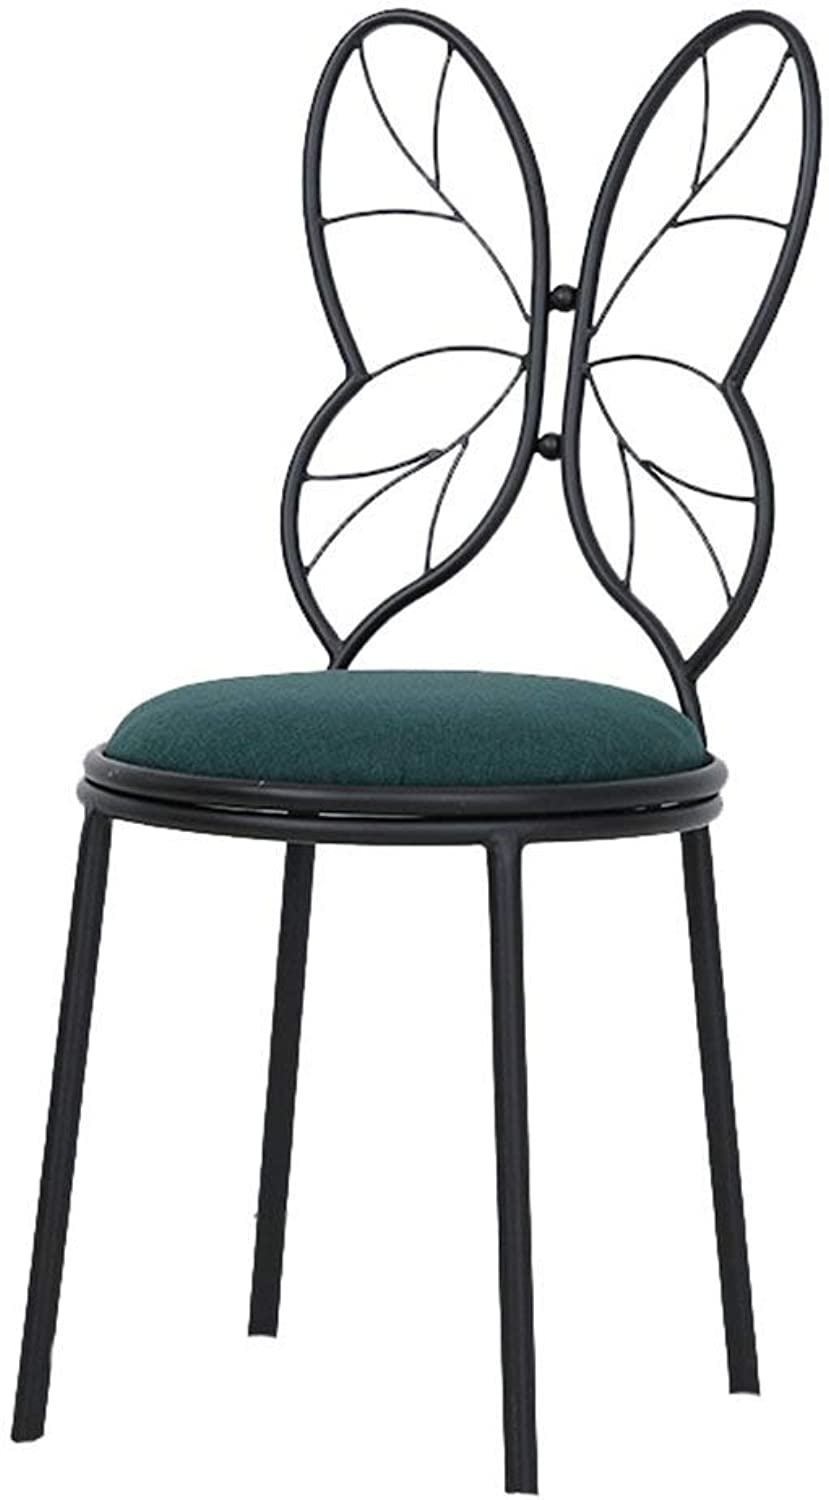 SHIJIAN Modern Bar Stools Set, Metal Butterfly Backrest Base for Breakfast Bar, Counter, Kitchen and Home Barstools (Size   38  85CM) (color   color C)